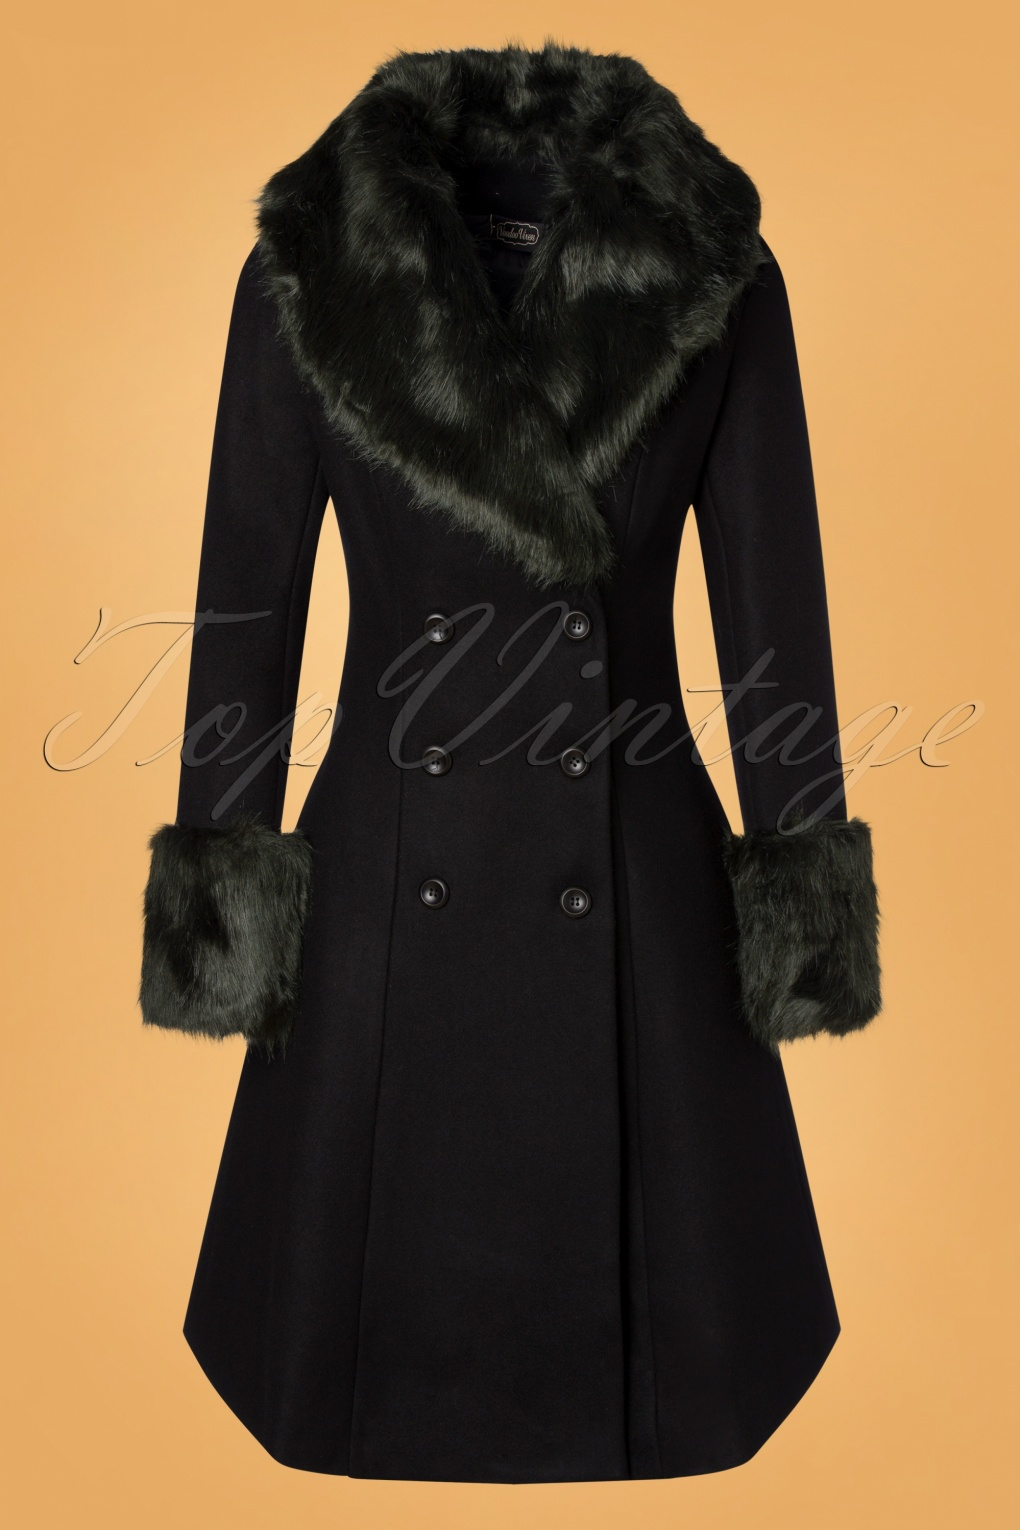 1950s Jackets, Coats, Bolero | Swing, Pin Up, Rockabilly 50s Sylvie Coat in Black £124.97 AT vintagedancer.com